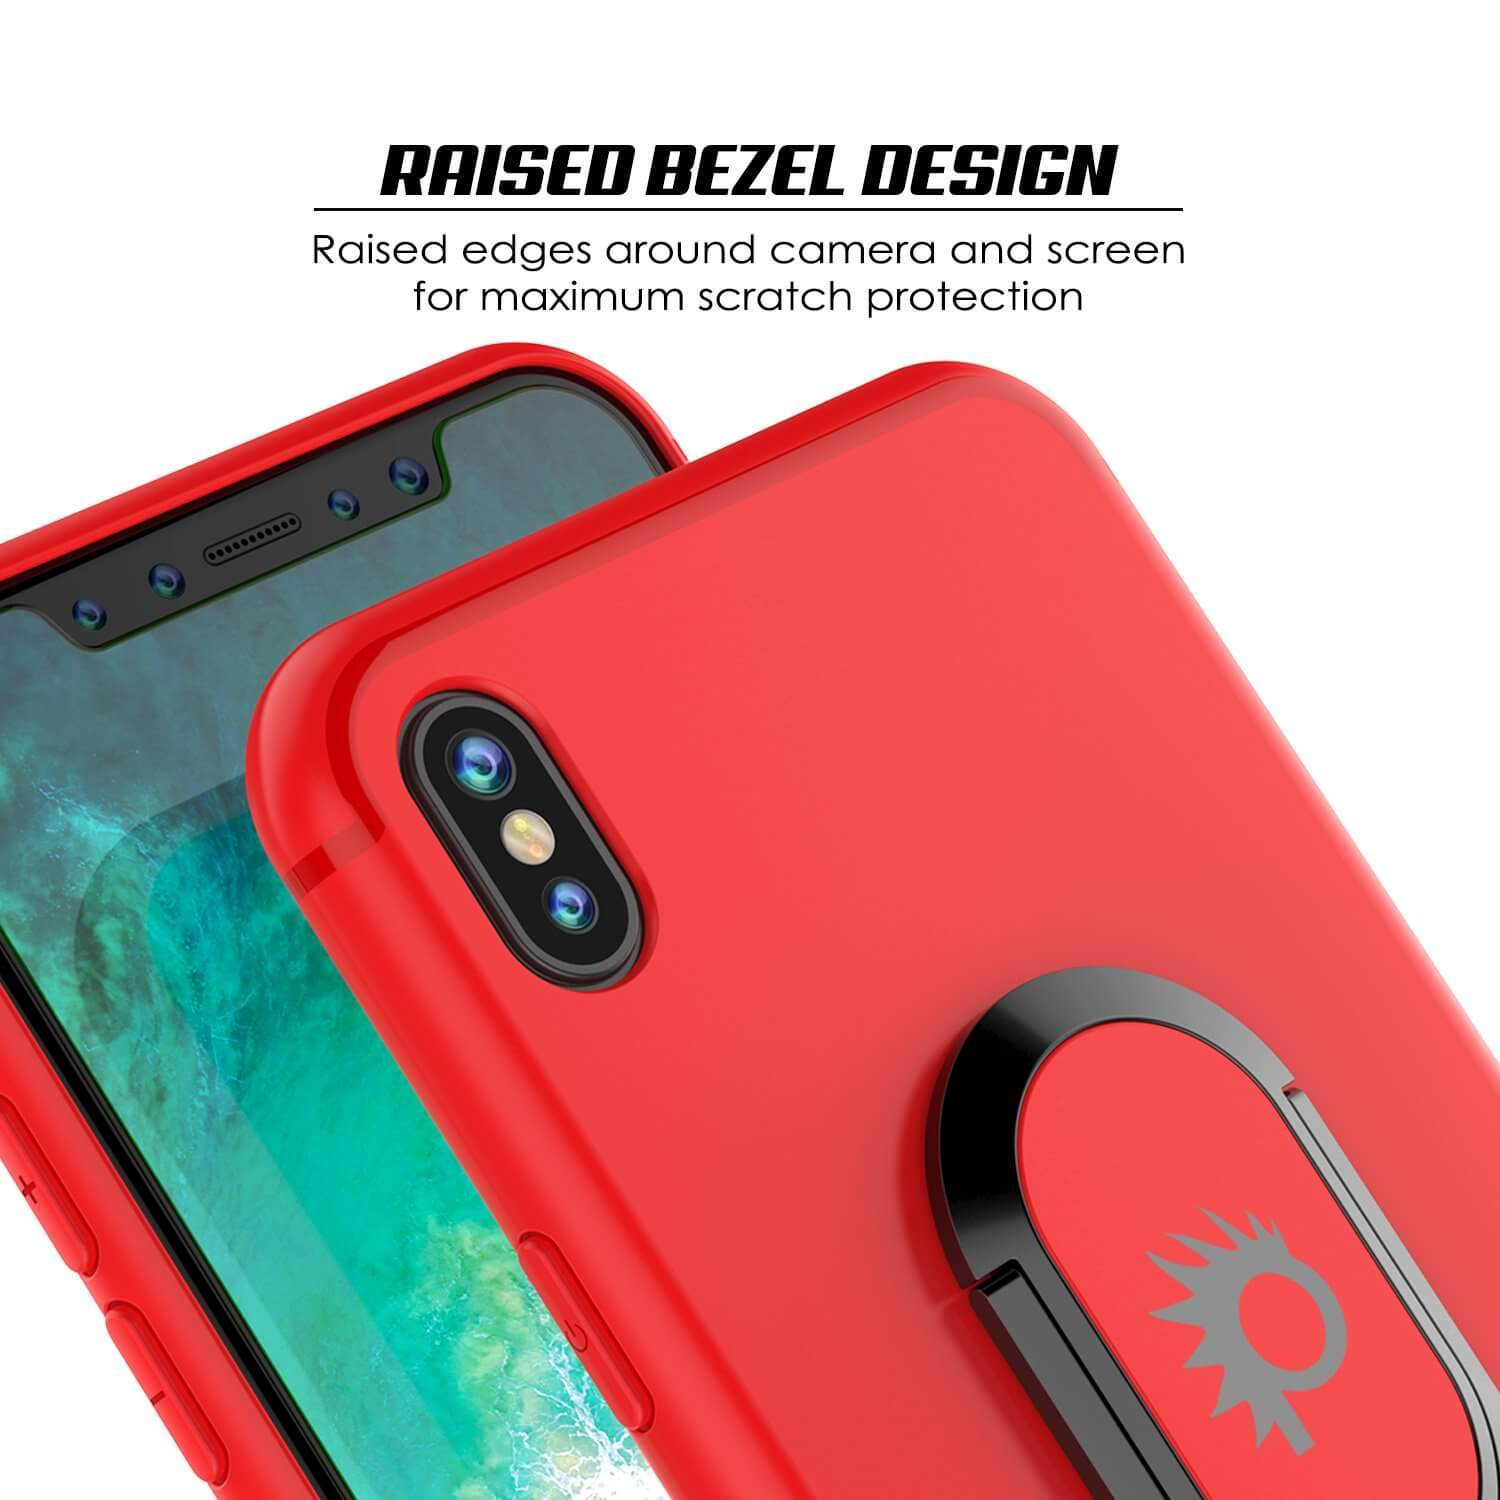 iPhone XS Max Case, Punkcase Magnetix Protective TPU Cover W/ Kickstand, Tempered Glass Screen Protector [Red]